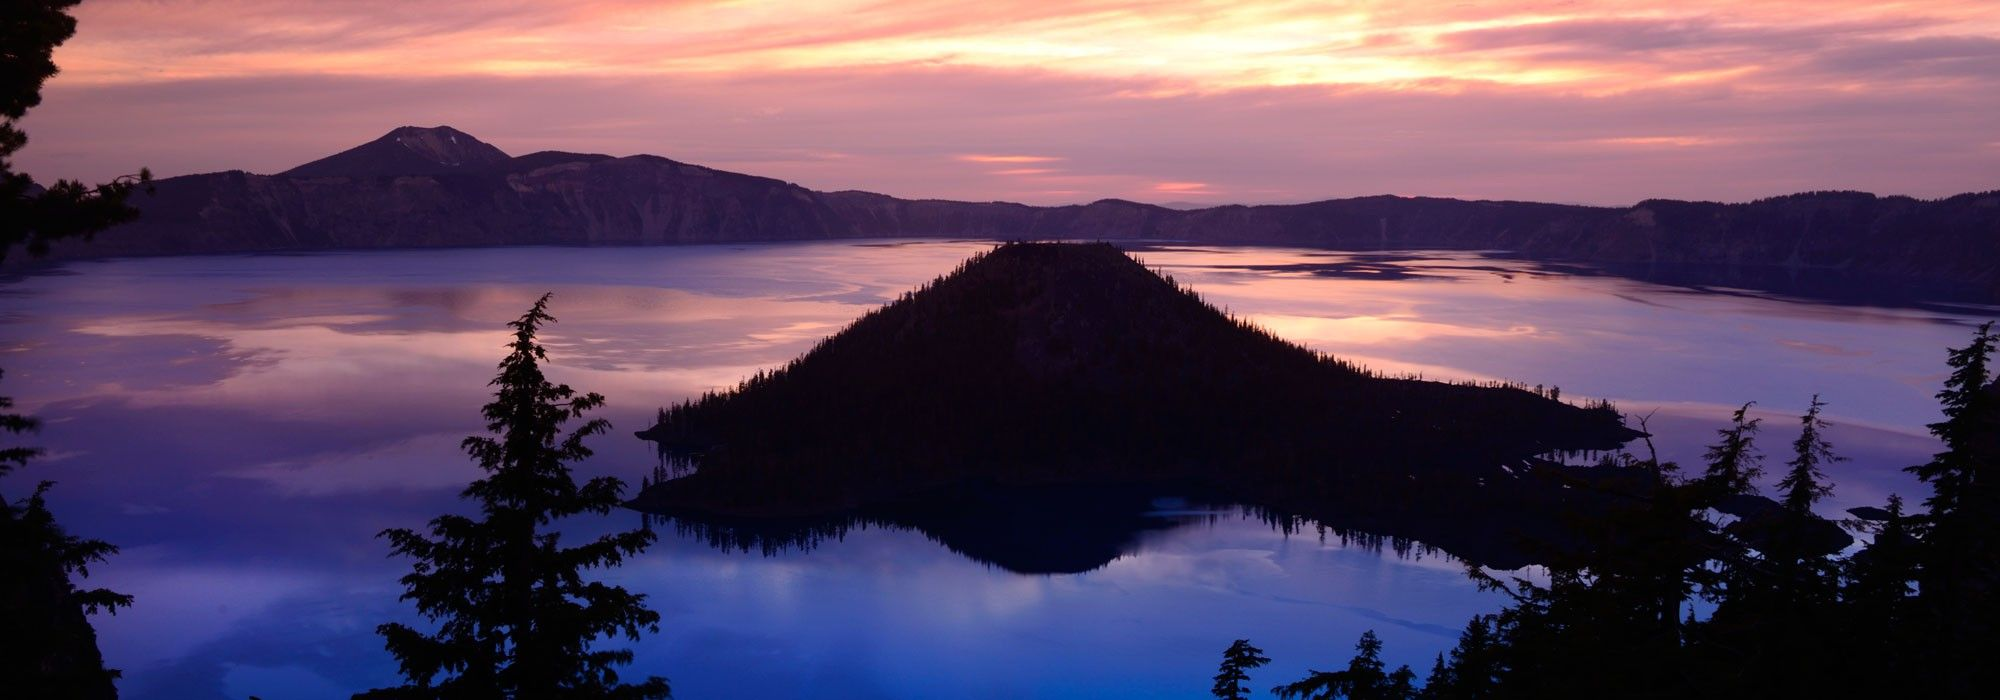 National Forests Parks Travel Oregon Things I Wanna Do - Oregon national parks